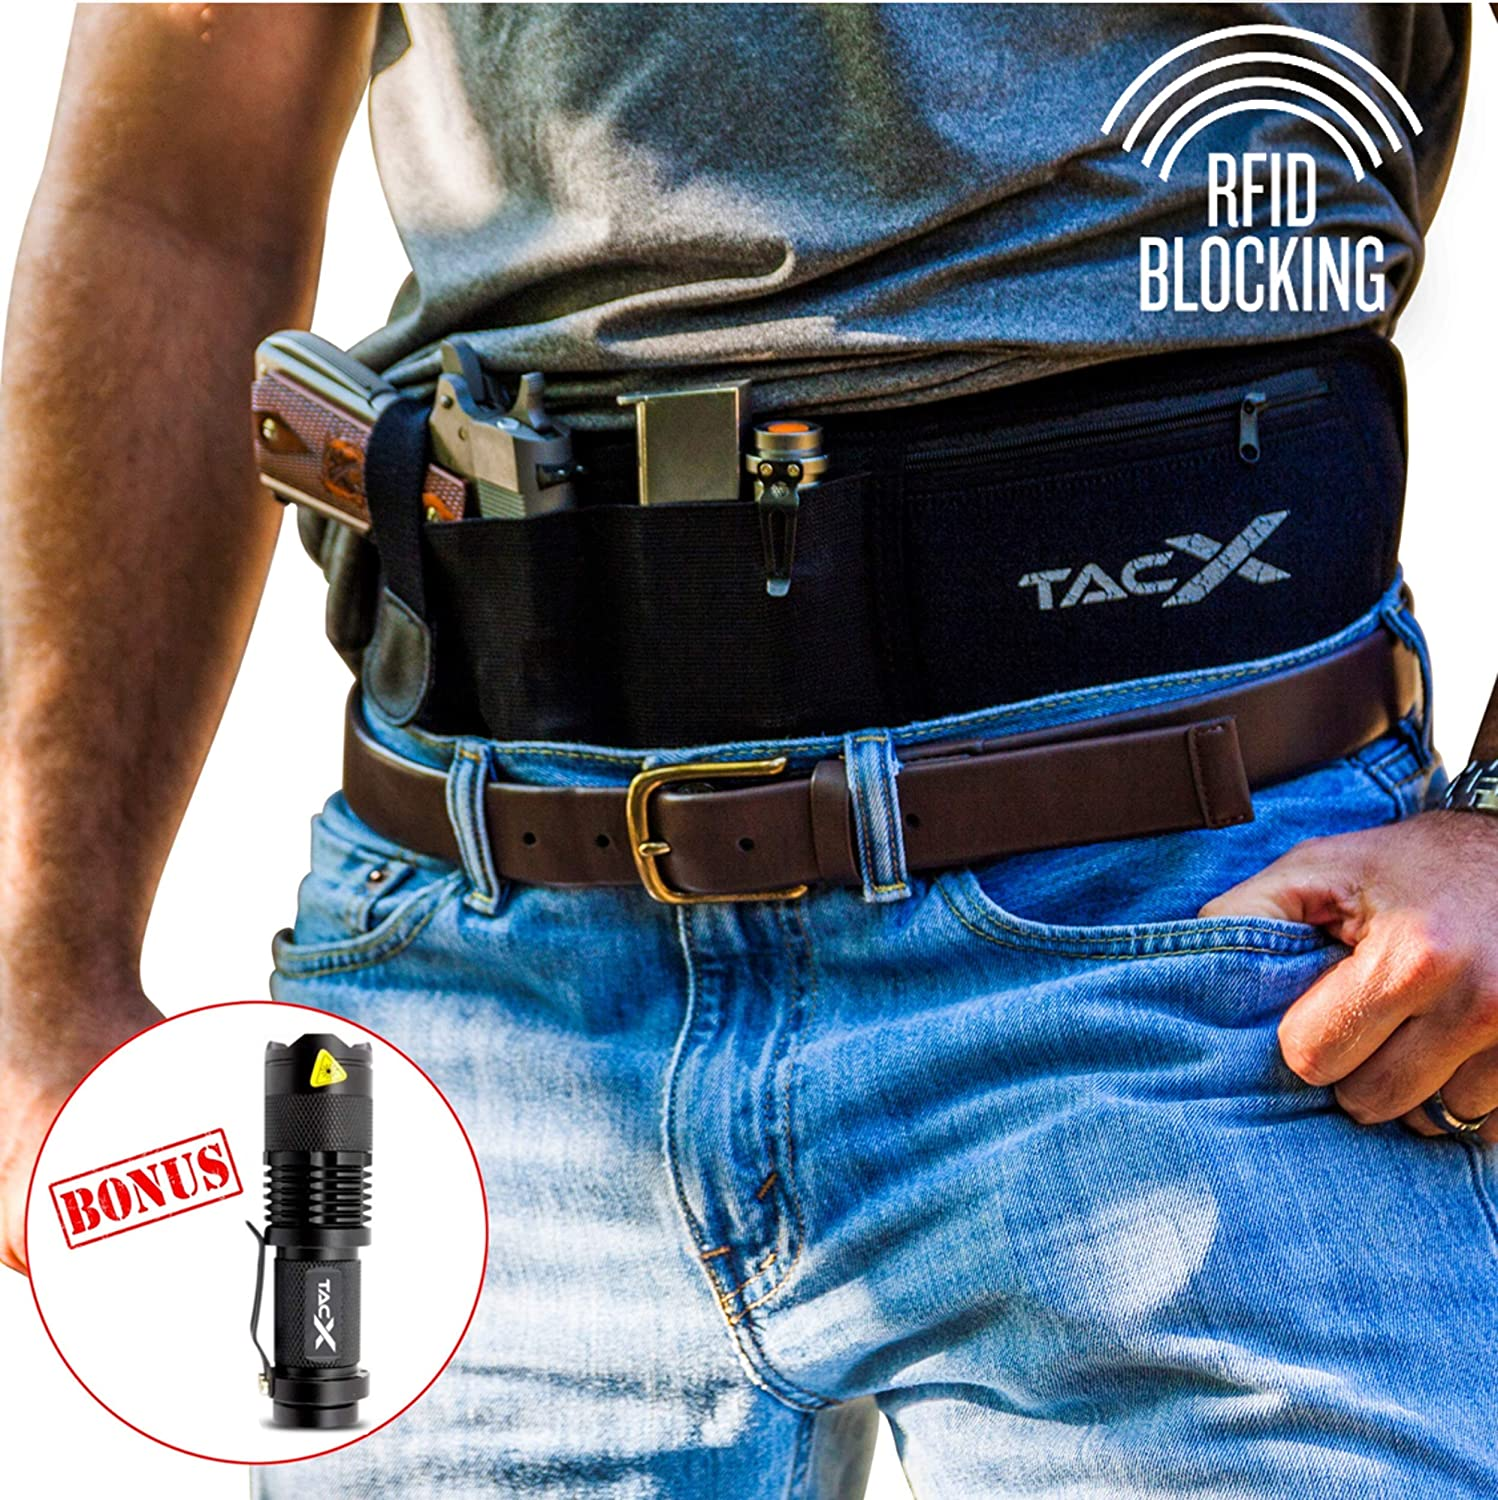 BELLY BAND HOLSTER for Active Concealed Carry | IWB/OWB Pistol Waistband  Belt for Running, Hiking, Jogging | Waterproof Zipper Travel Pocket | Spare